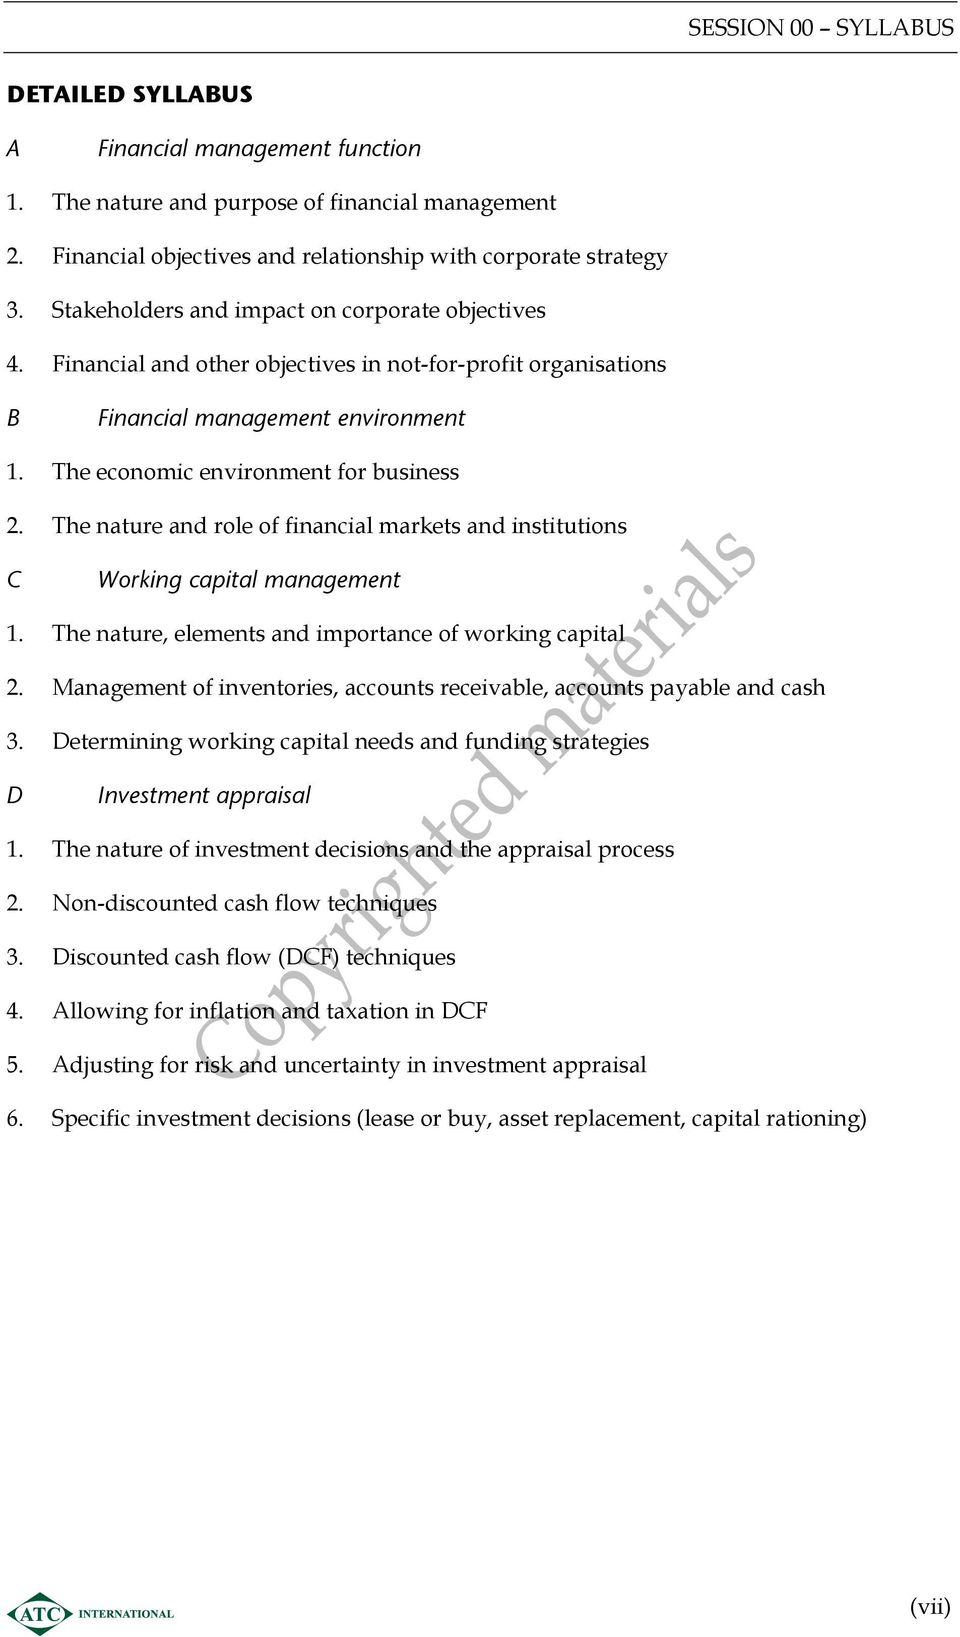 The nature and role of financial markets and institutions C Working capital management 1. The nature, elements and importance of working capital 2.